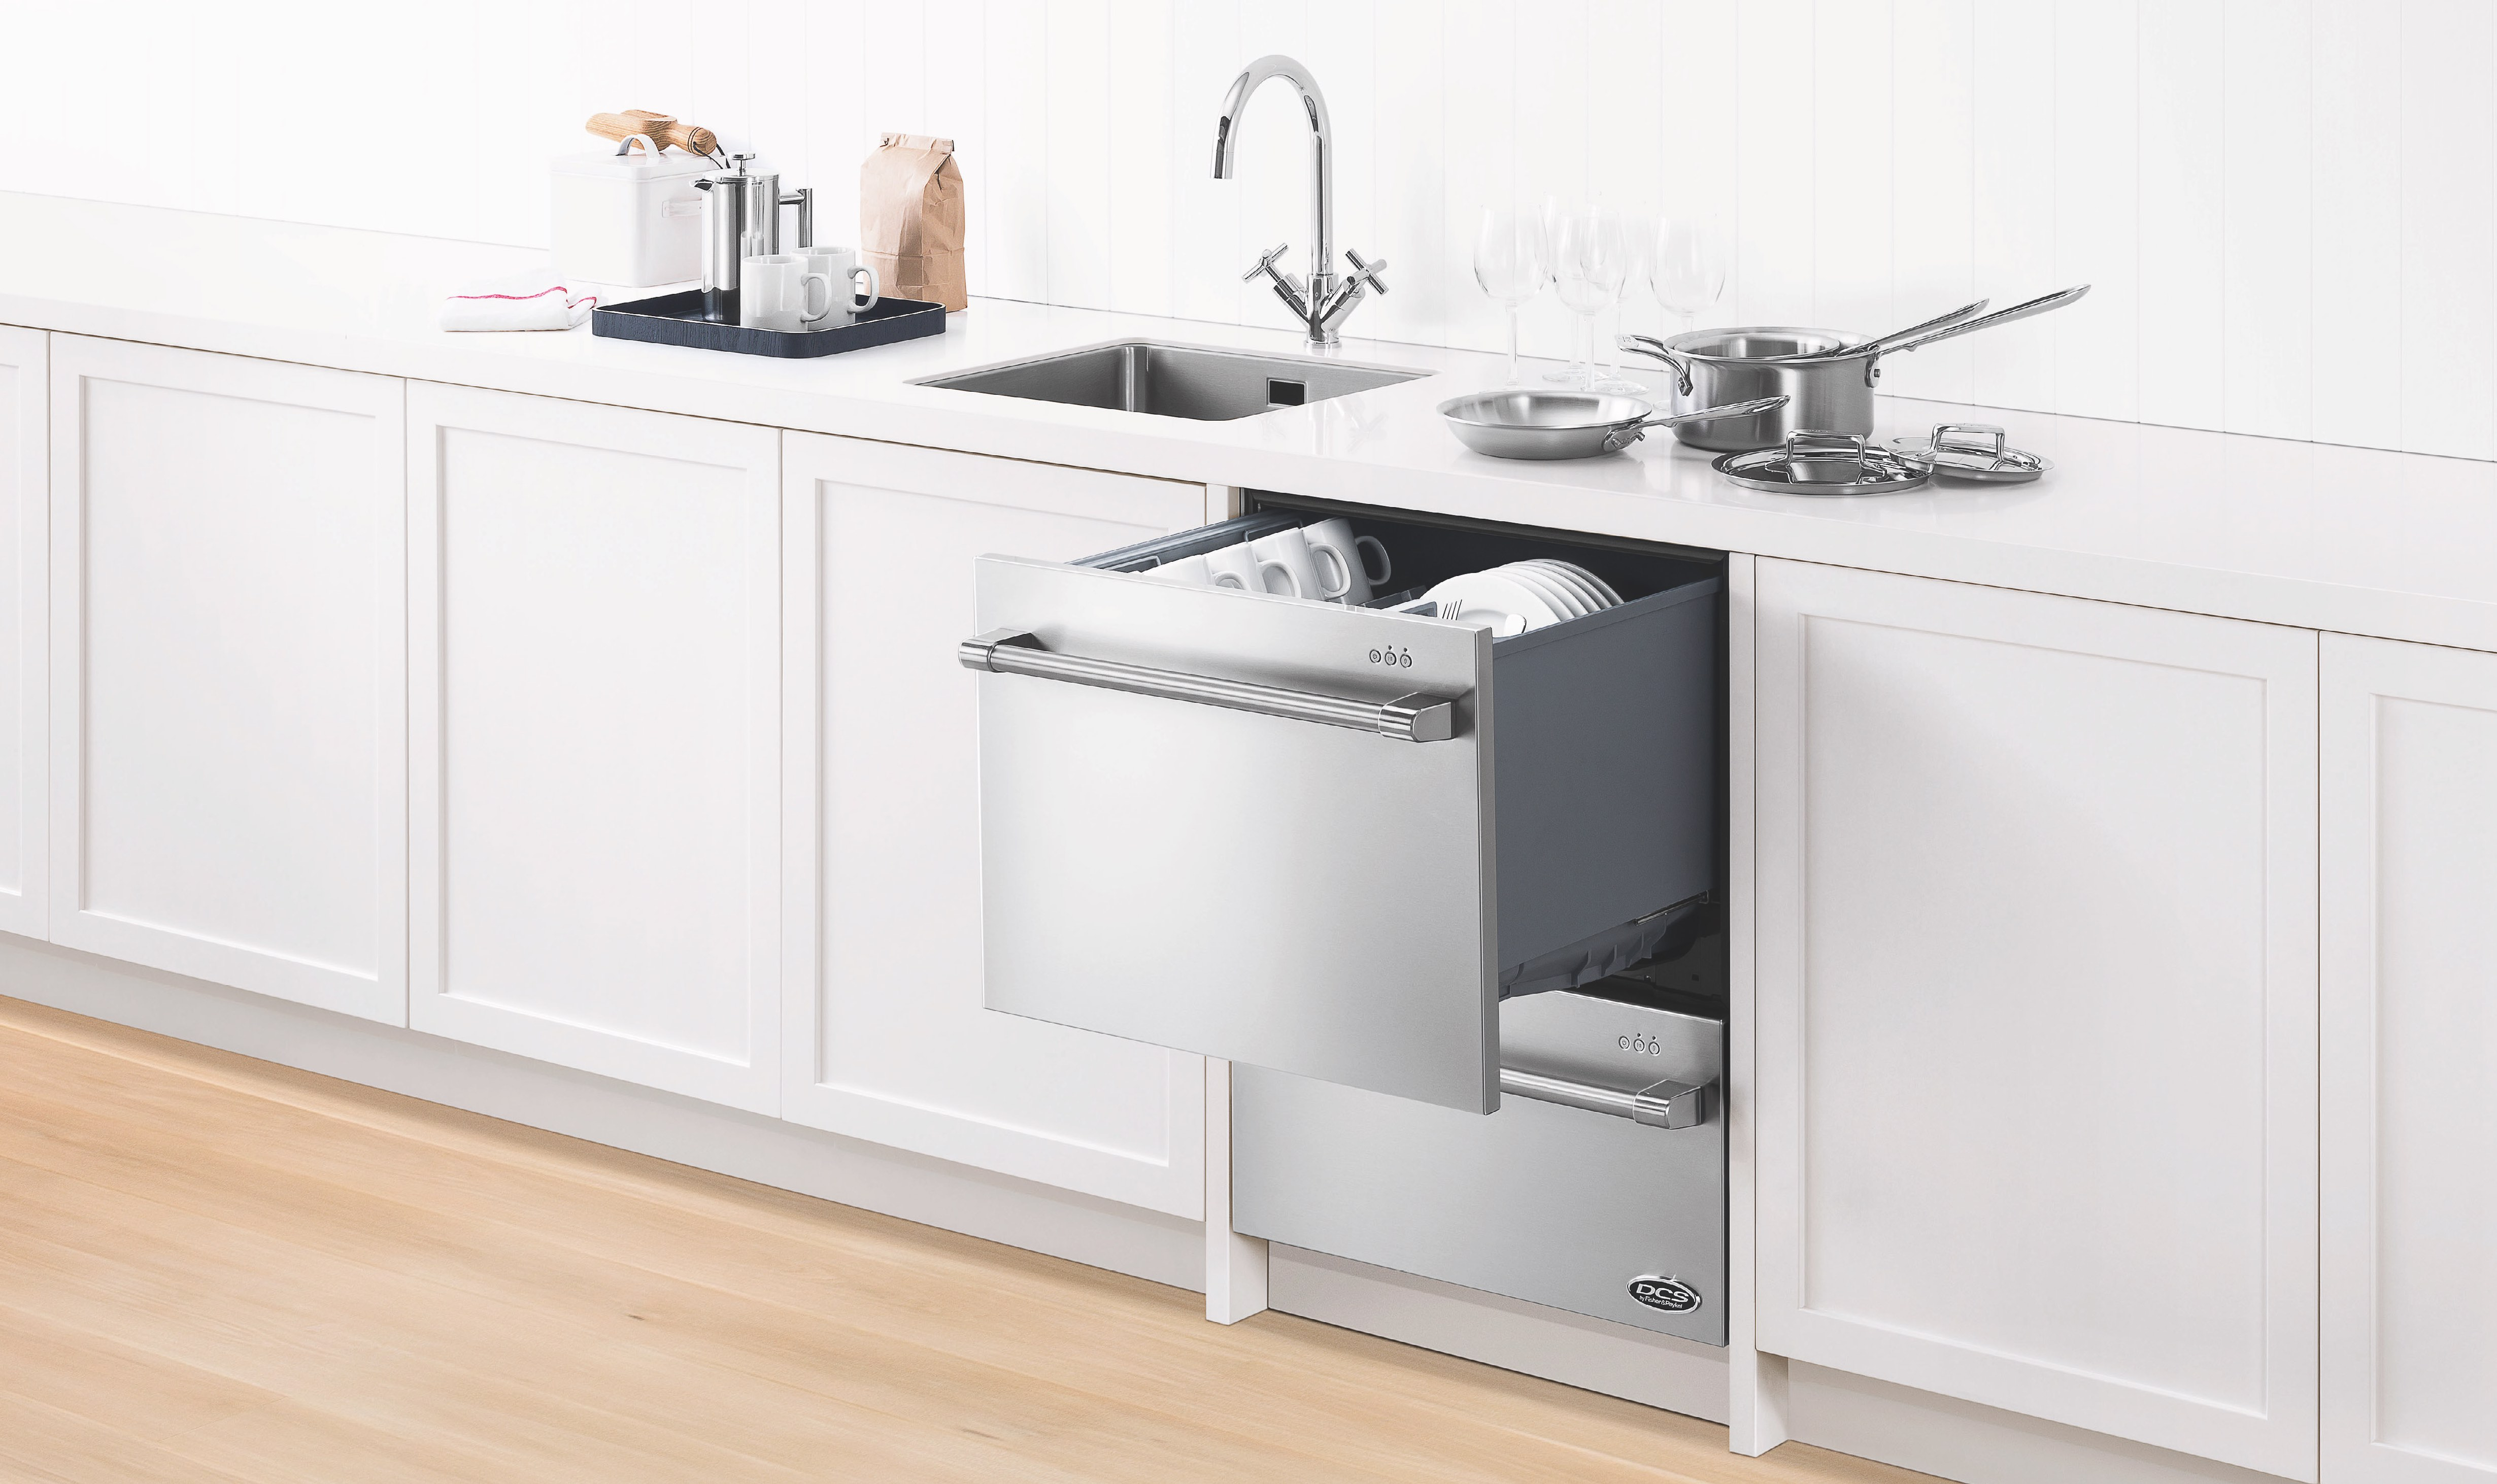 kitchen equipment drawer our compact undercounter trends popular single dishwasher panel new sink xfile paykel for under marvelous fisher pict commercial ready and u best double